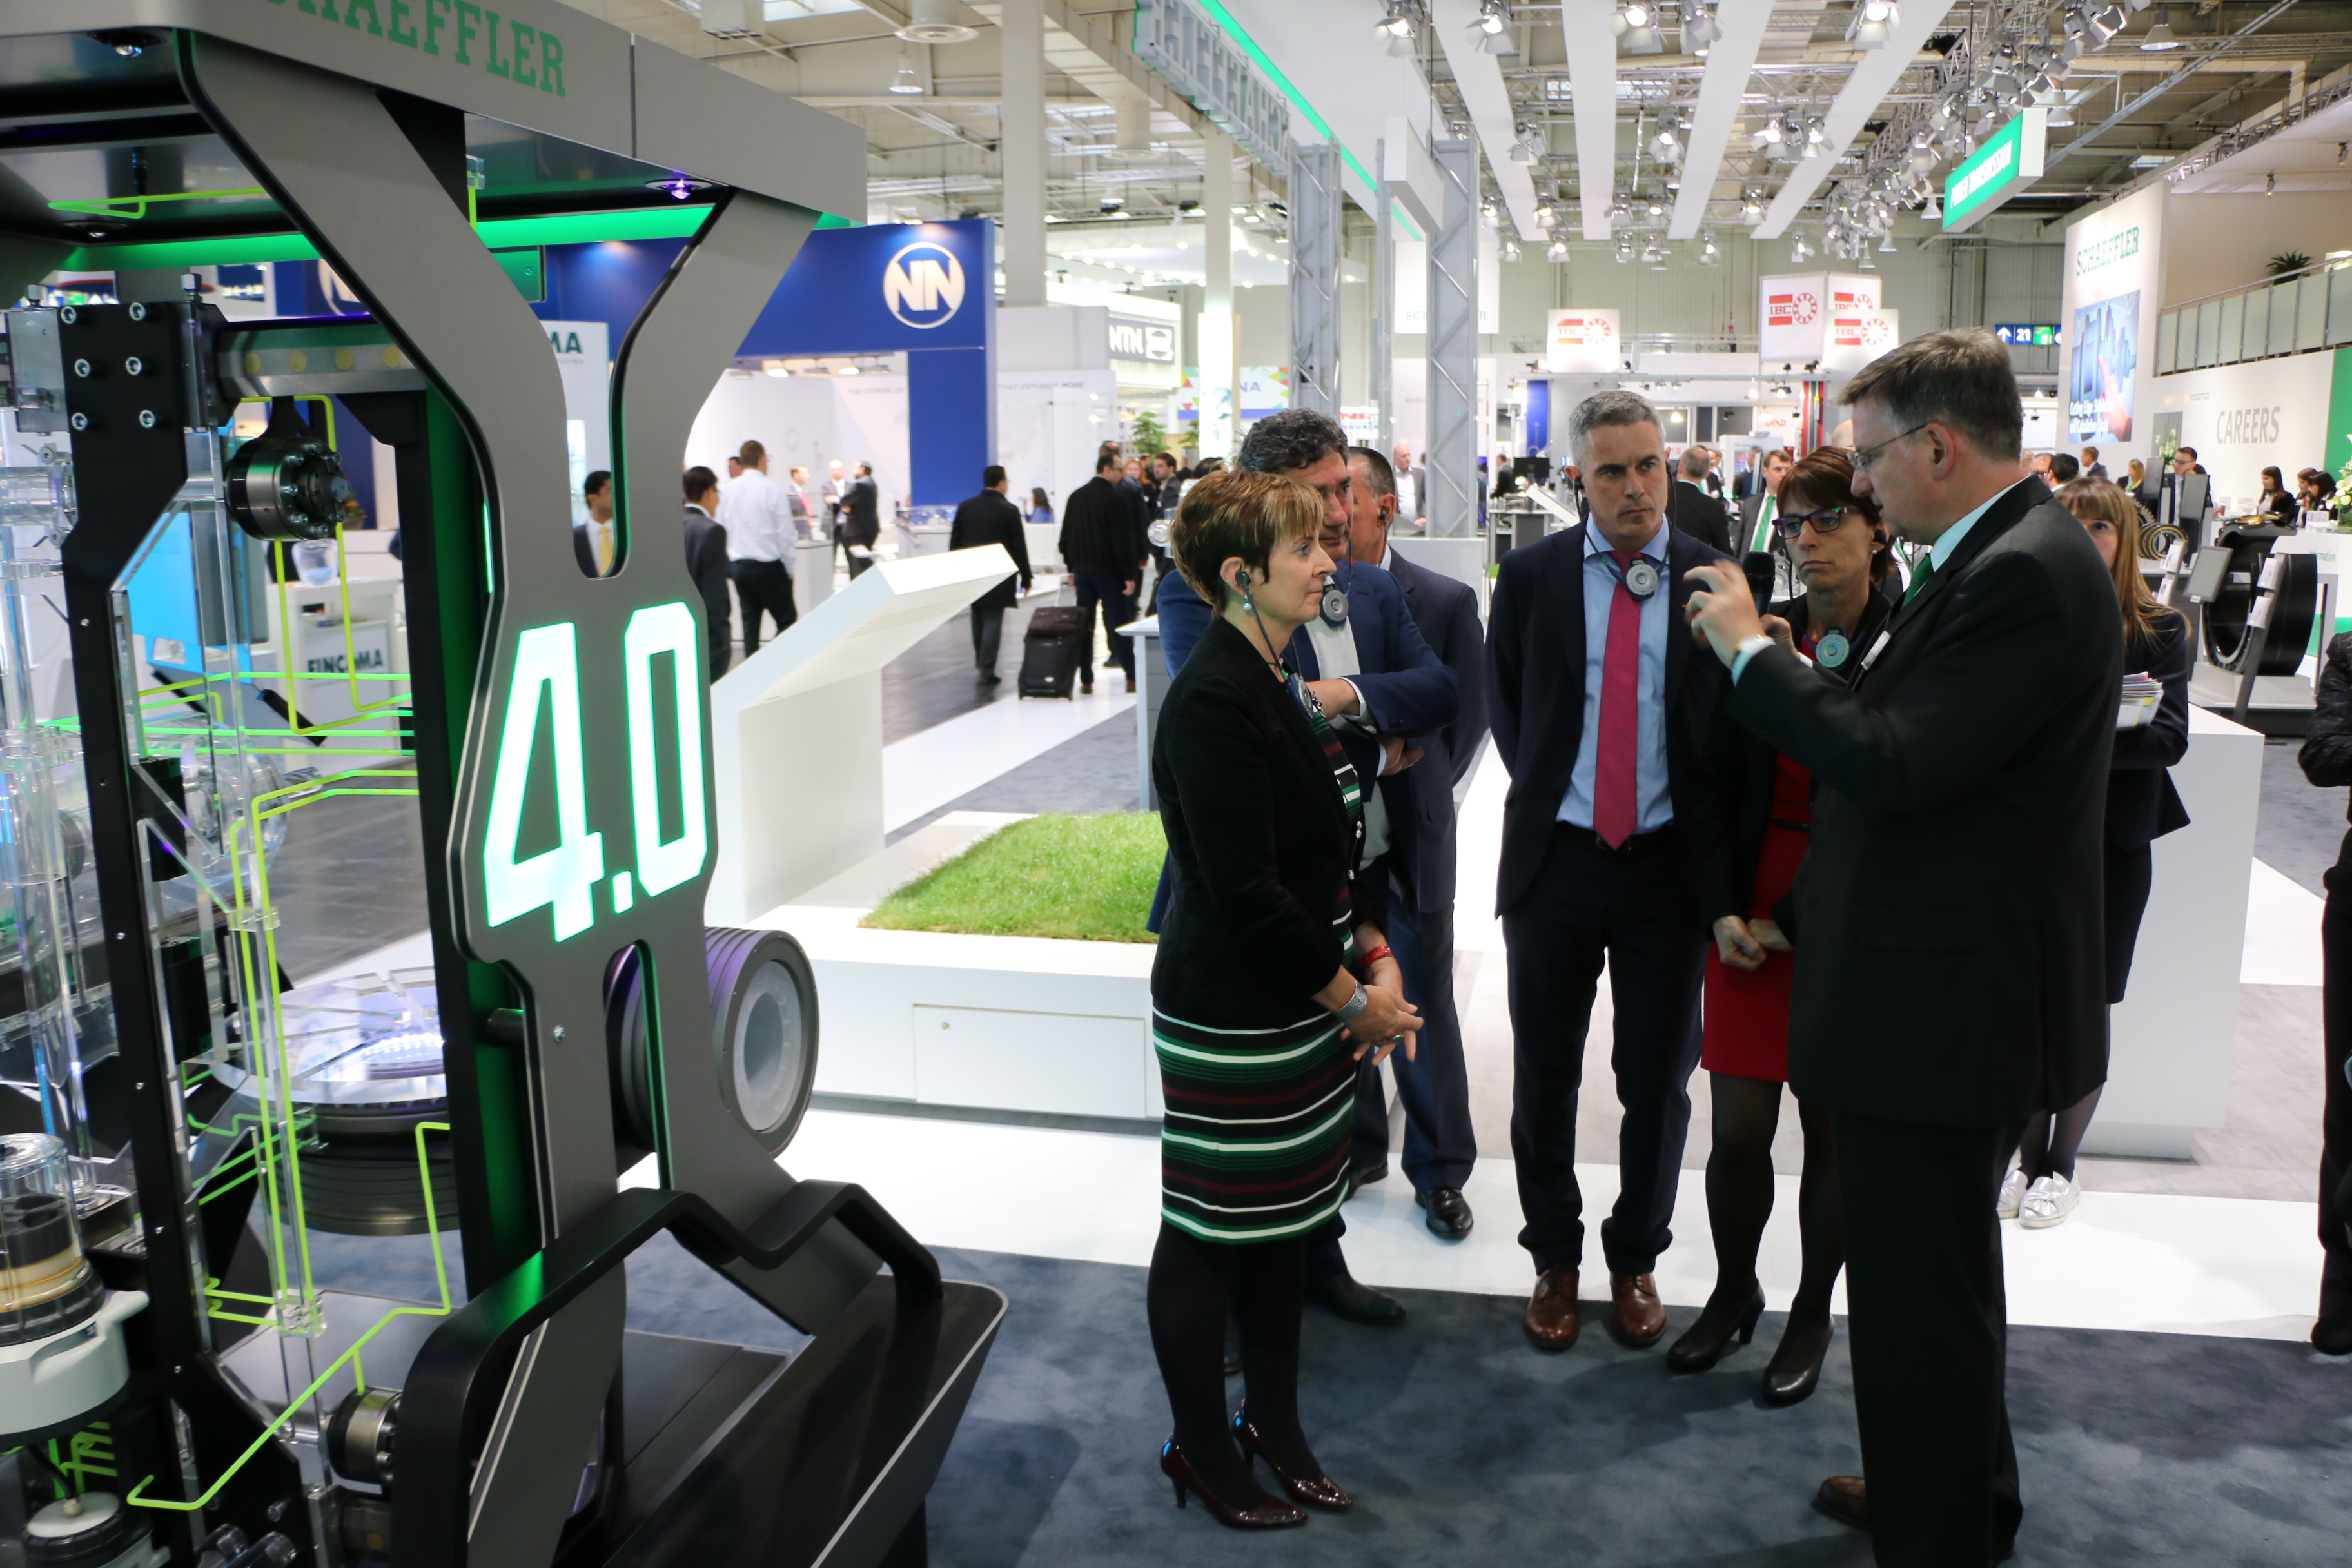 2017_04_24_tapia_hannover_messe_12.jpg